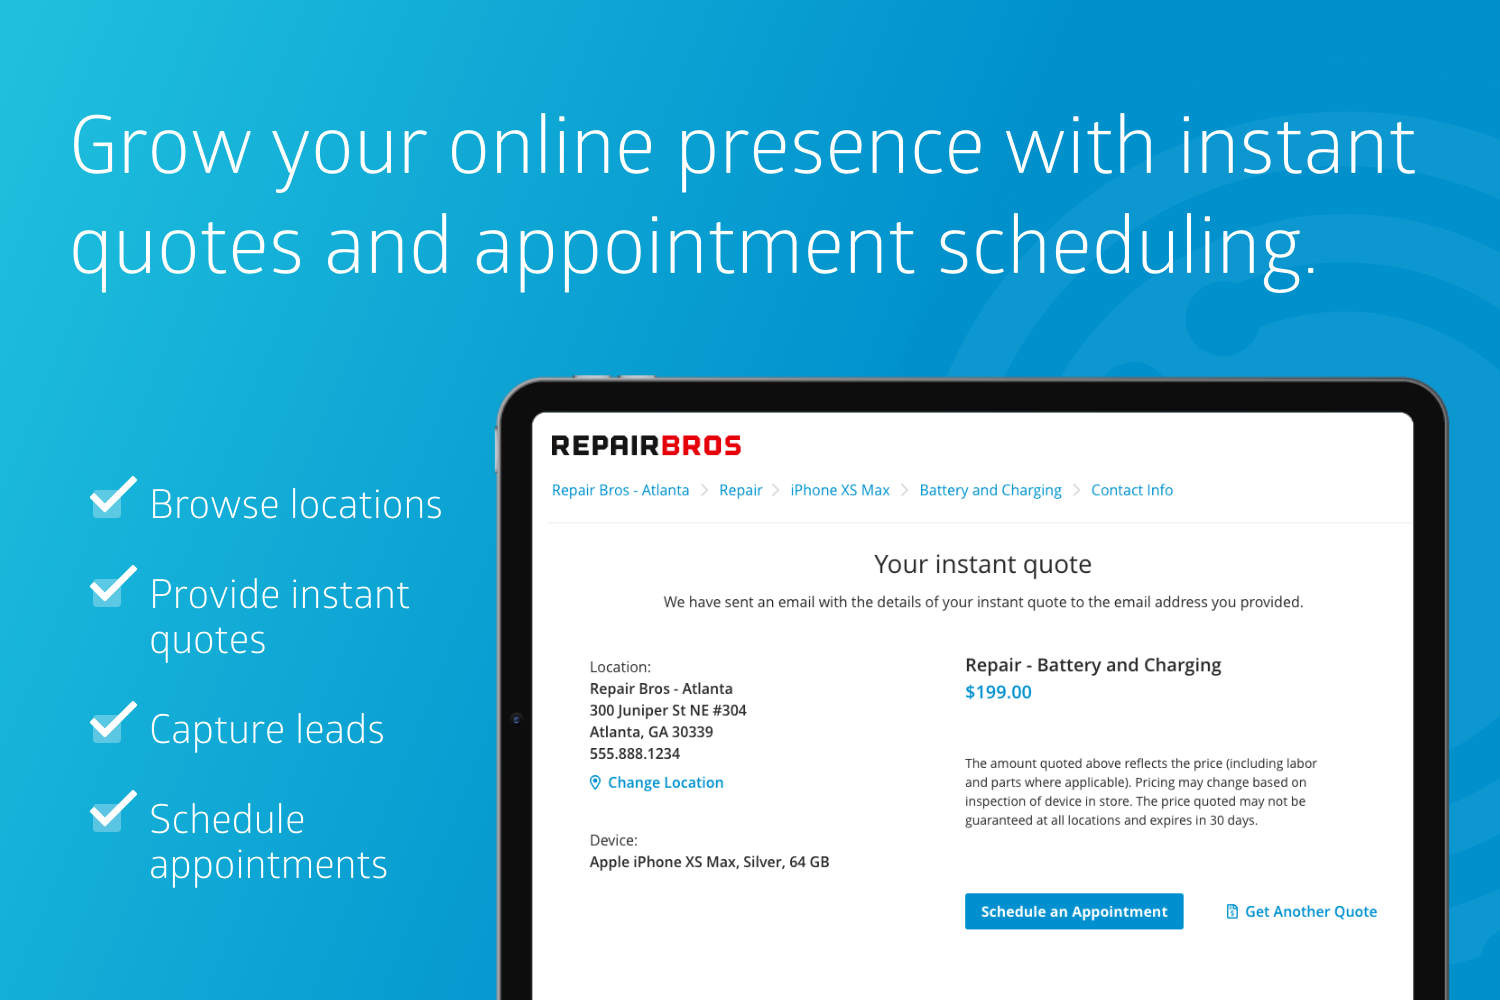 Grow your online presence with instant quotes and appointment scheduling.